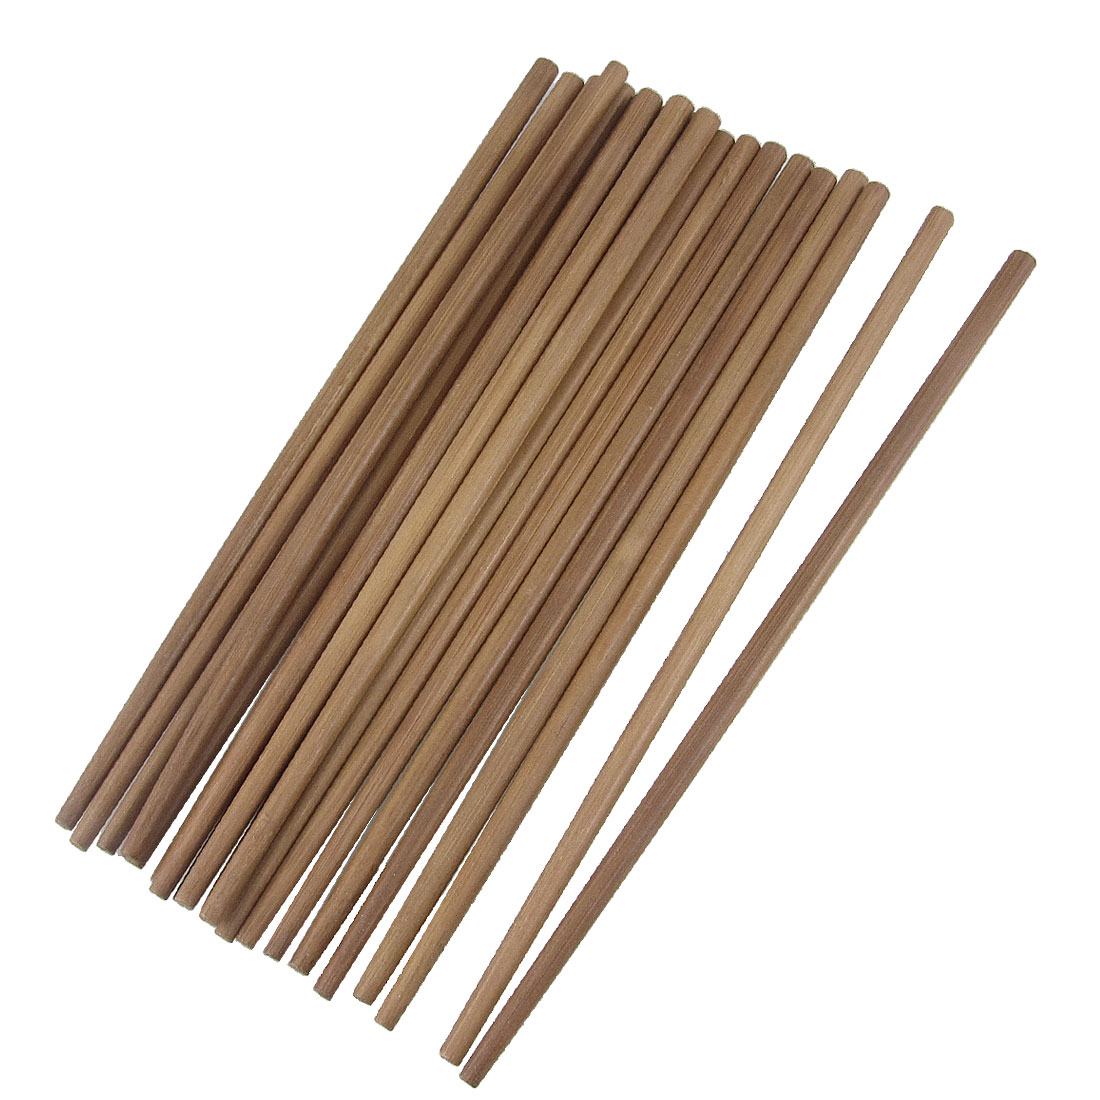 "Restaurant Home Kitchen Bamboo Chopsticks Brown 9.4"" Long 10 Pairs"